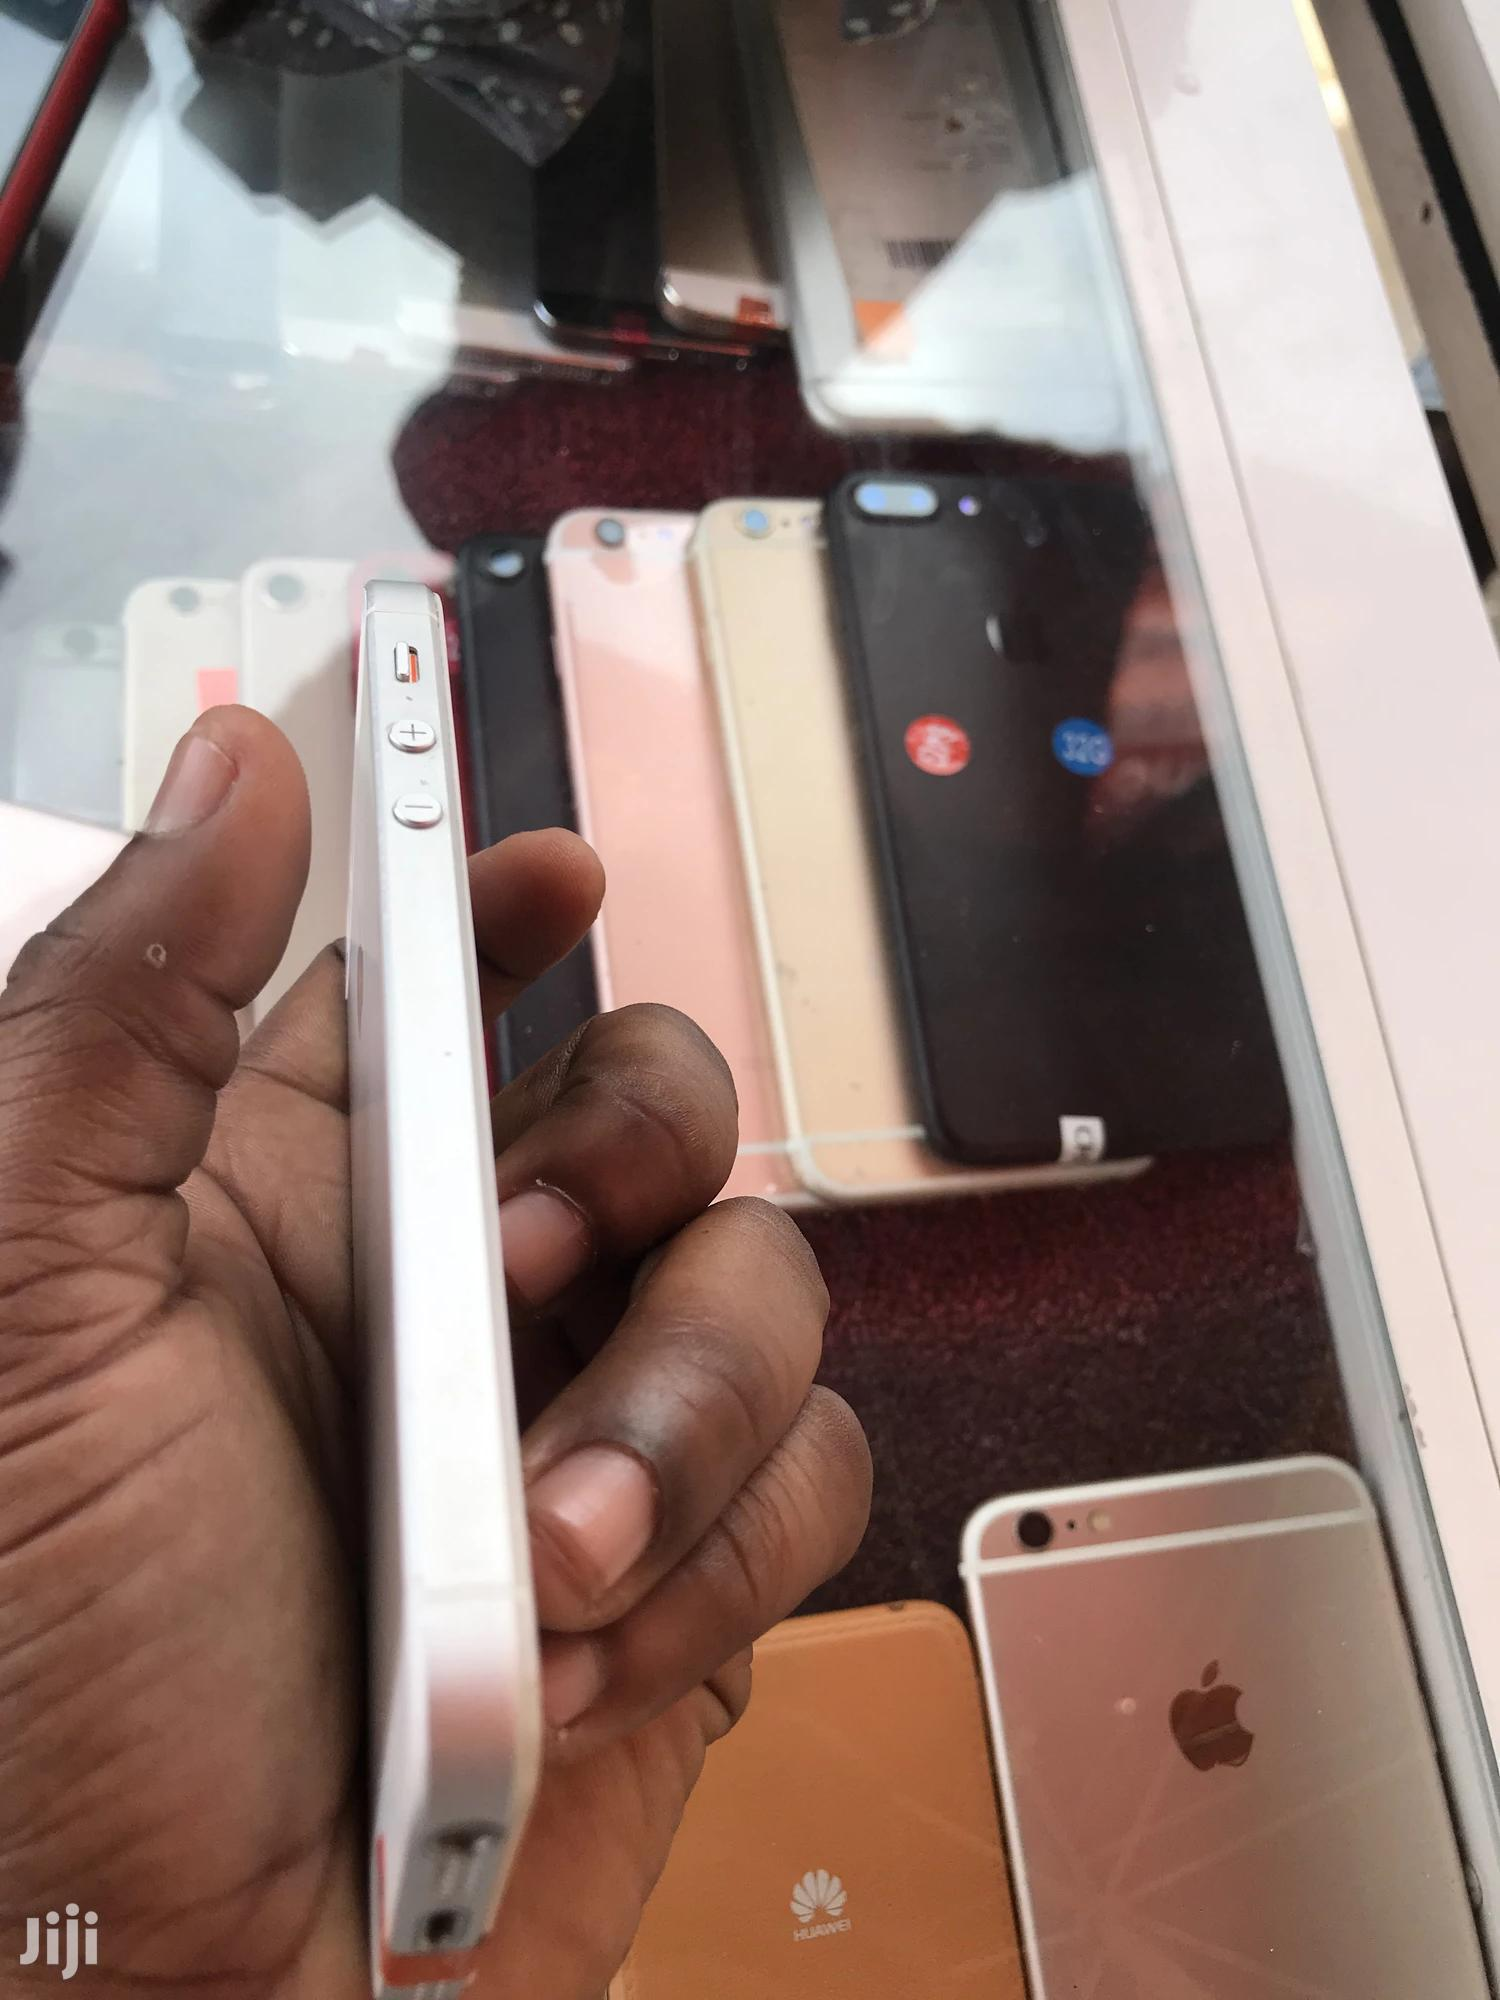 Apple iPhone 5s 16 GB Silver   Mobile Phones for sale in East Legon, Greater Accra, Ghana